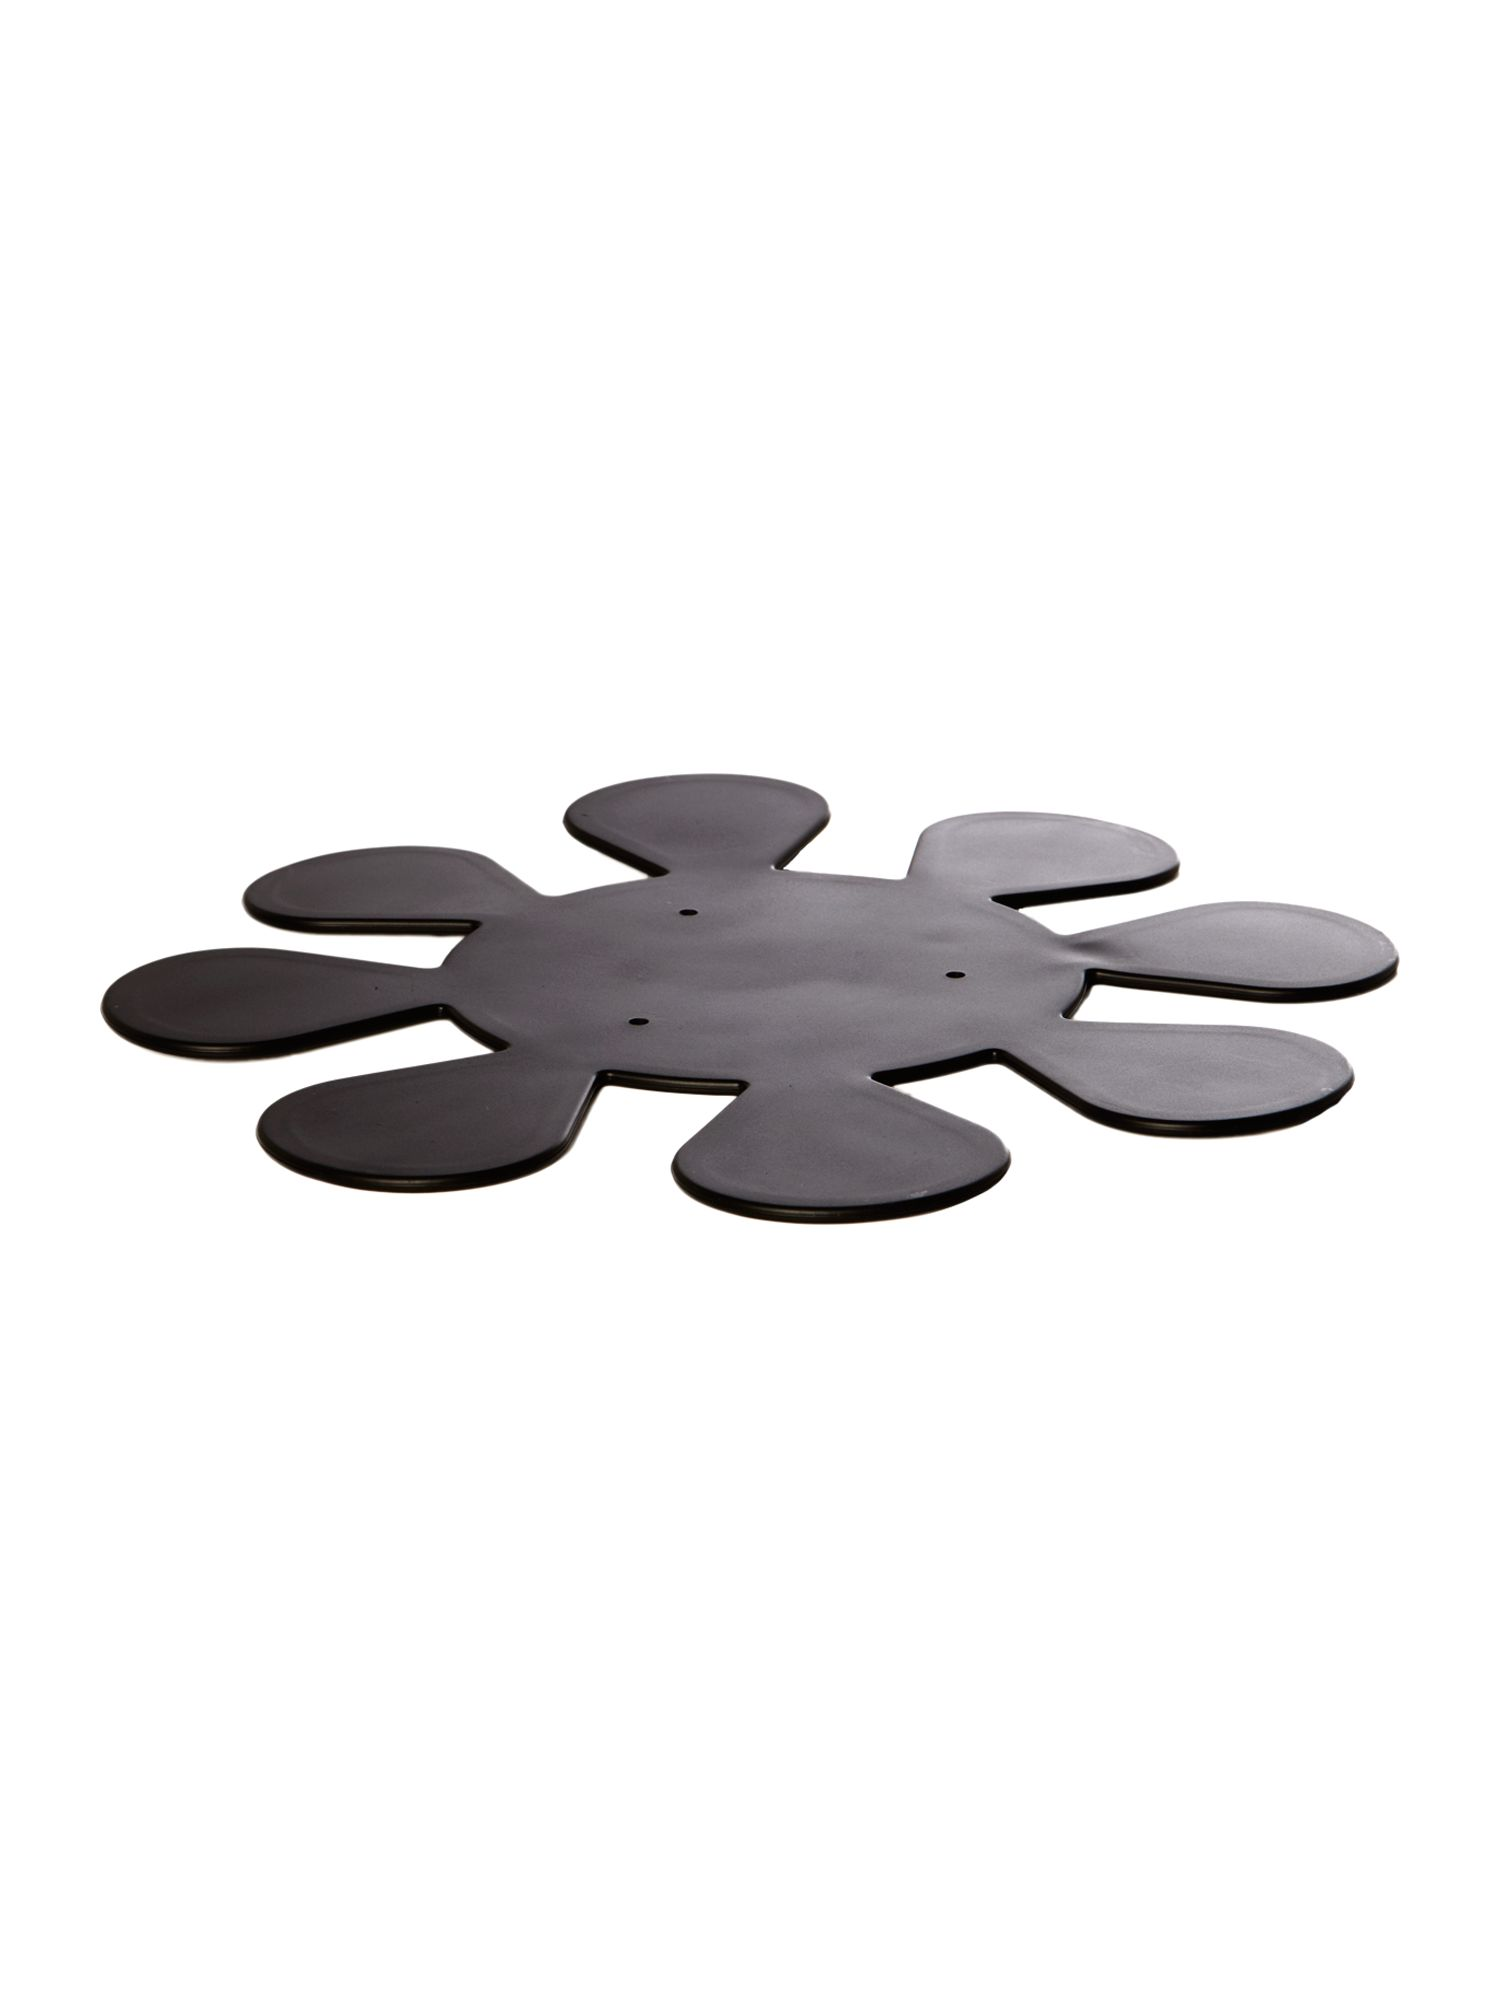 Black trivet/foldable bowl